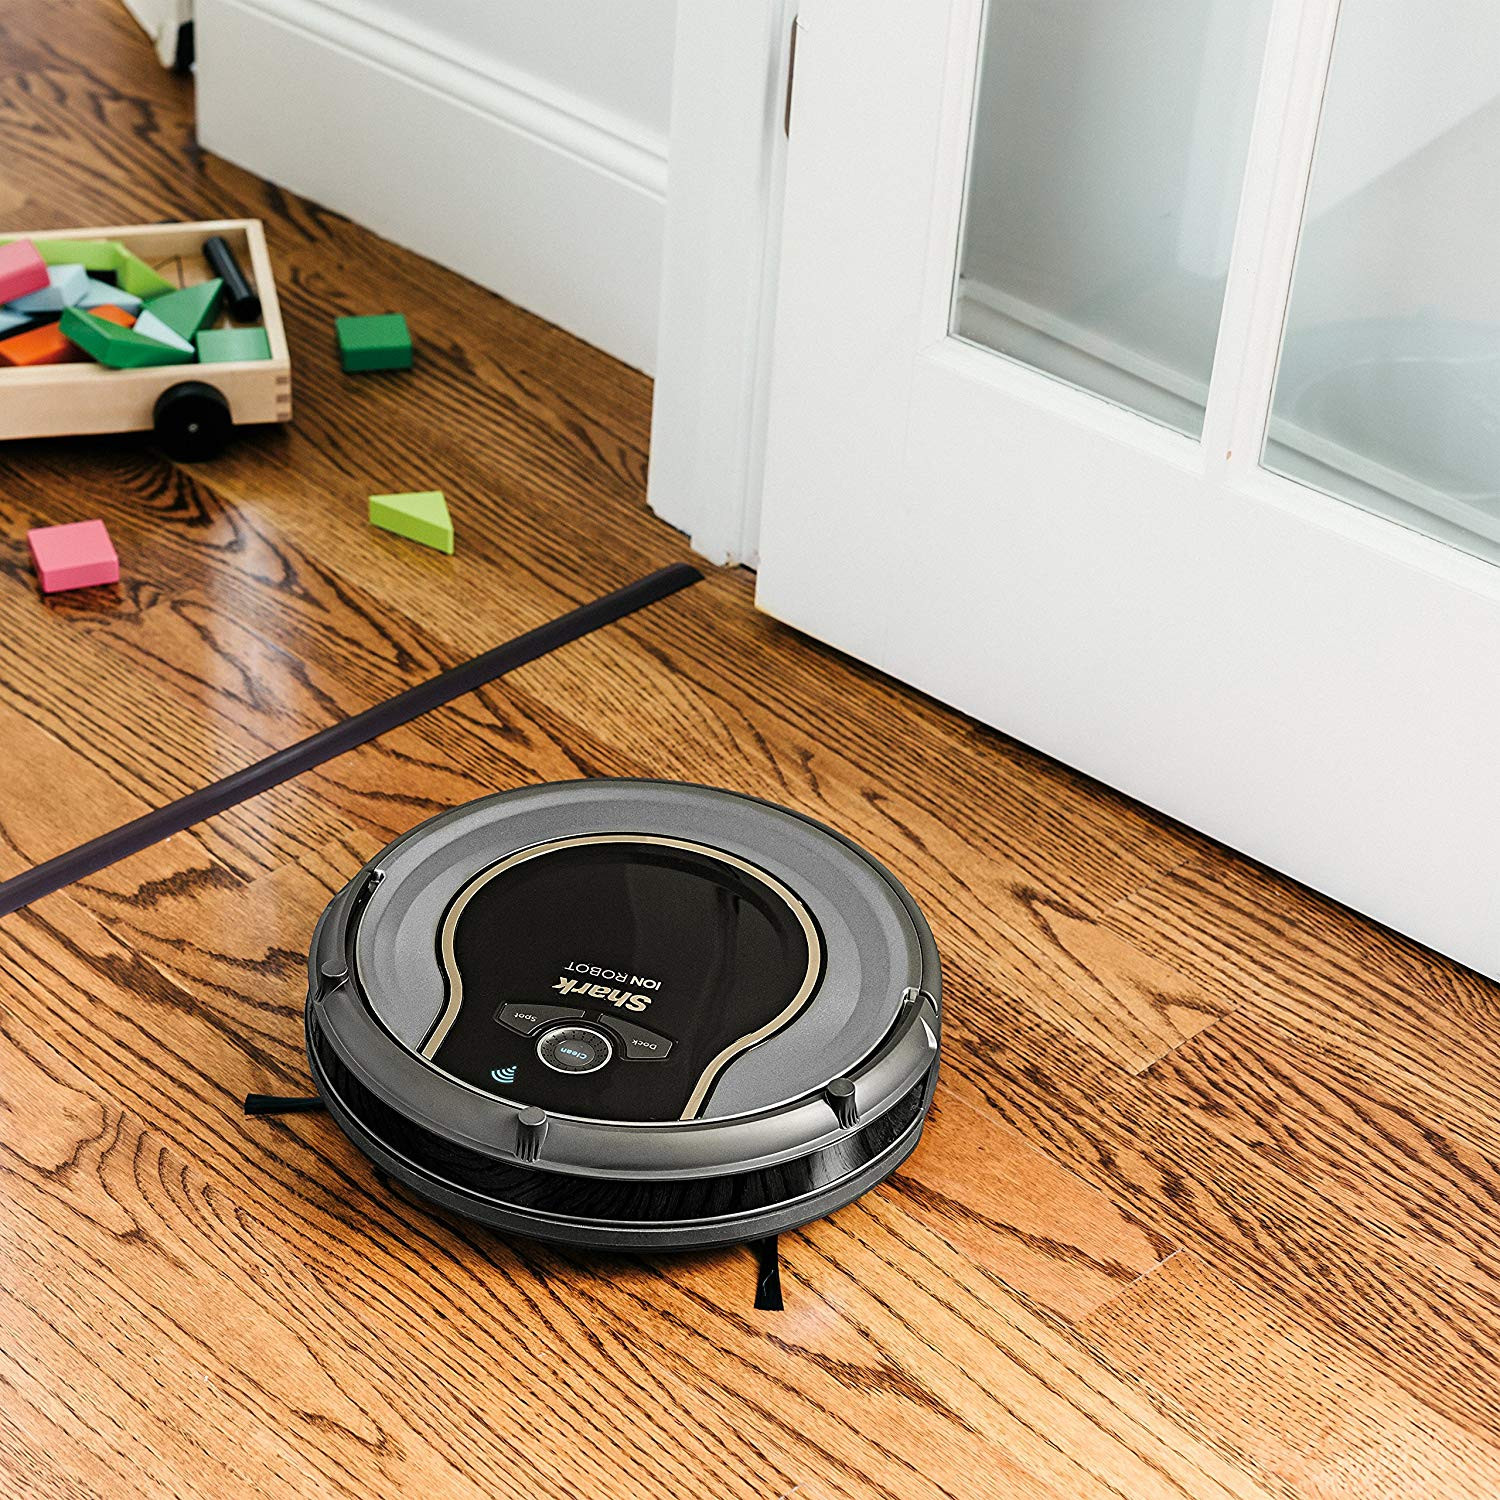 Best Robot Vacuum for Pet Hair On Hardwood Floors Of top 10 Best Robot Vacuum Cleaners that Works with Alexa In Usa Throughout Shark Ion Rv750 Robot Vacuum Cleaner